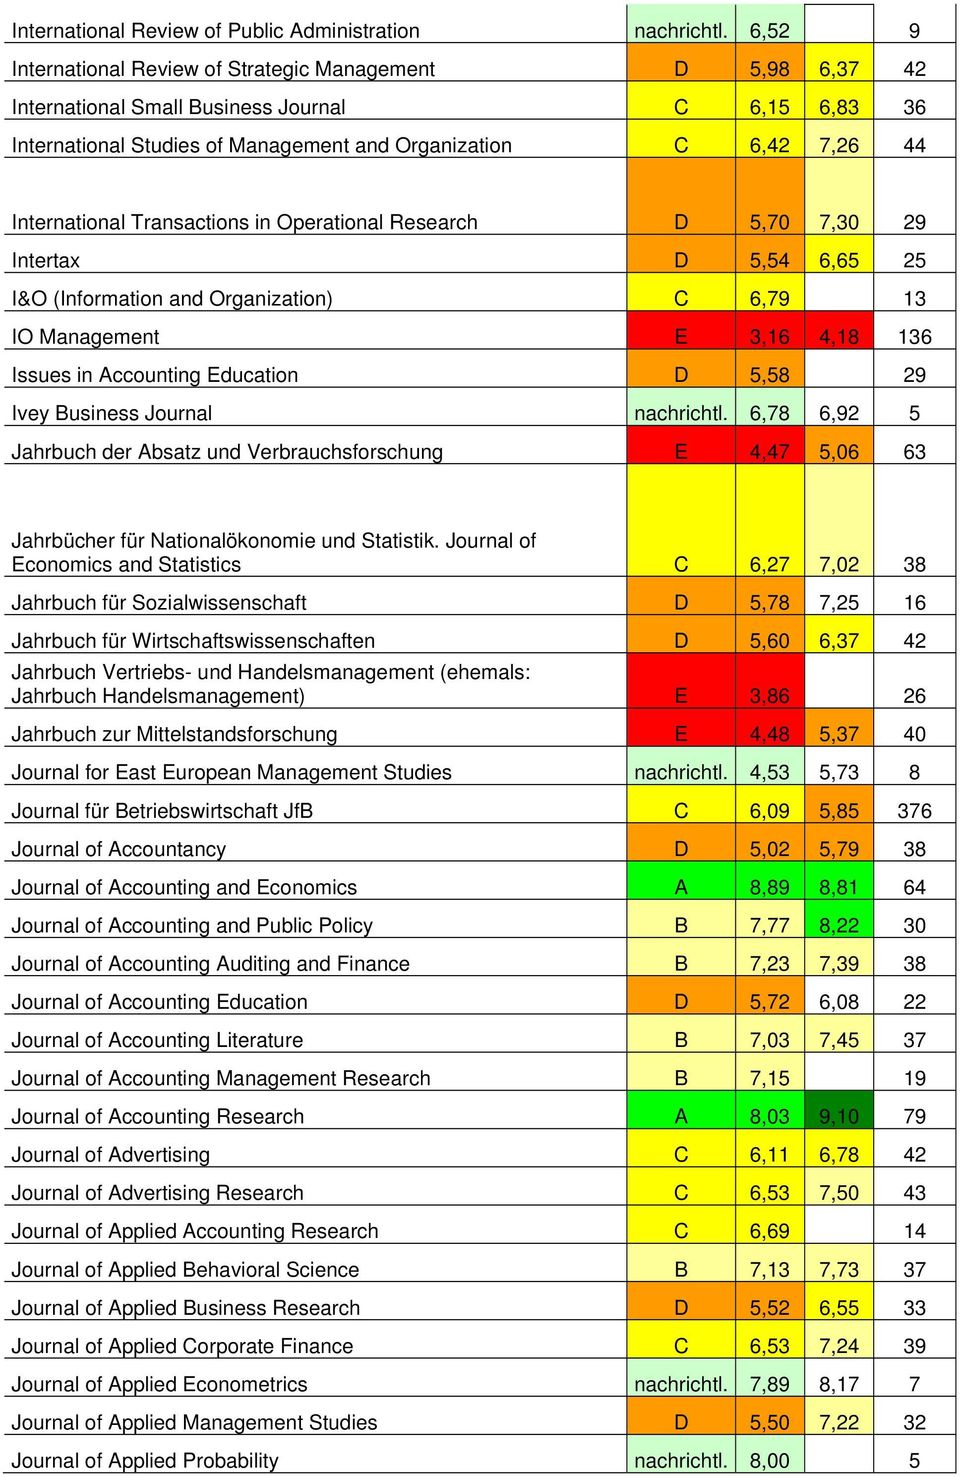 International Transactions in Operational Research D 5,70 7,30 29 Intertax D 5,54 6,65 25 I&O (Information and Organization) C 6,79 13 IO Management E 3,16 4,18 136 Issues in Accounting Education D